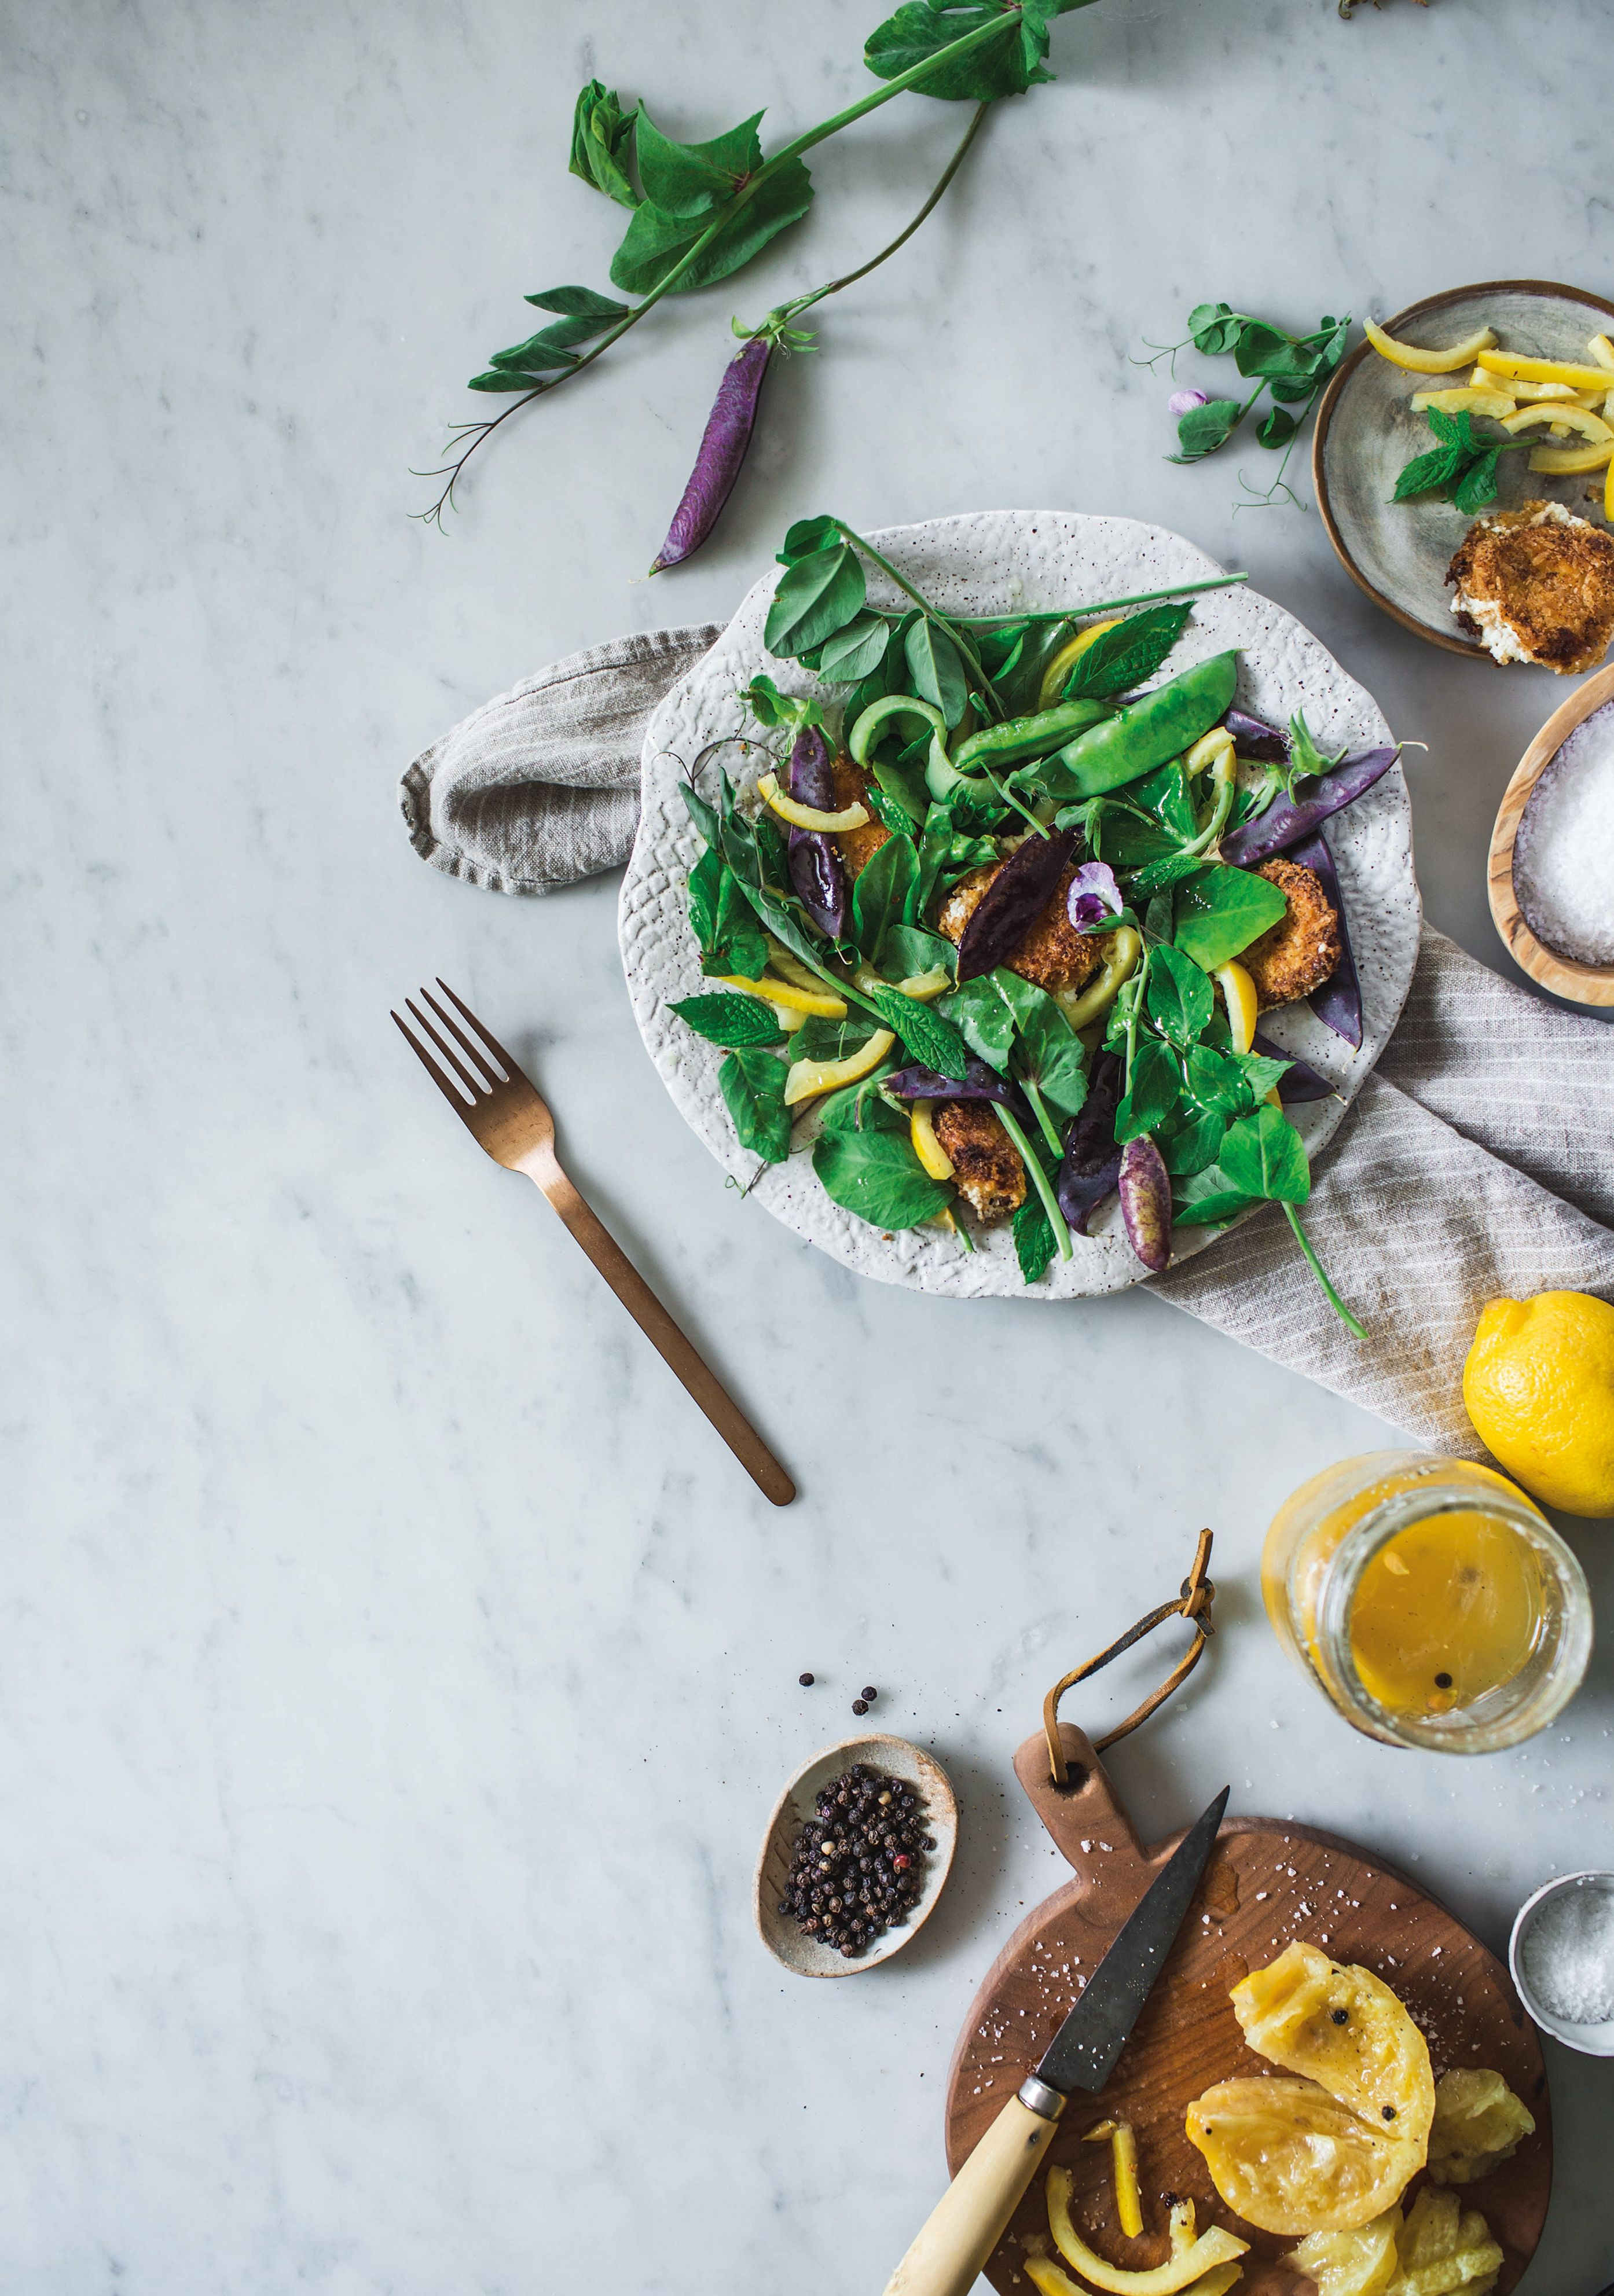 Snap Pea Salad with Preserved Lemon and Goat Cheese Medallions